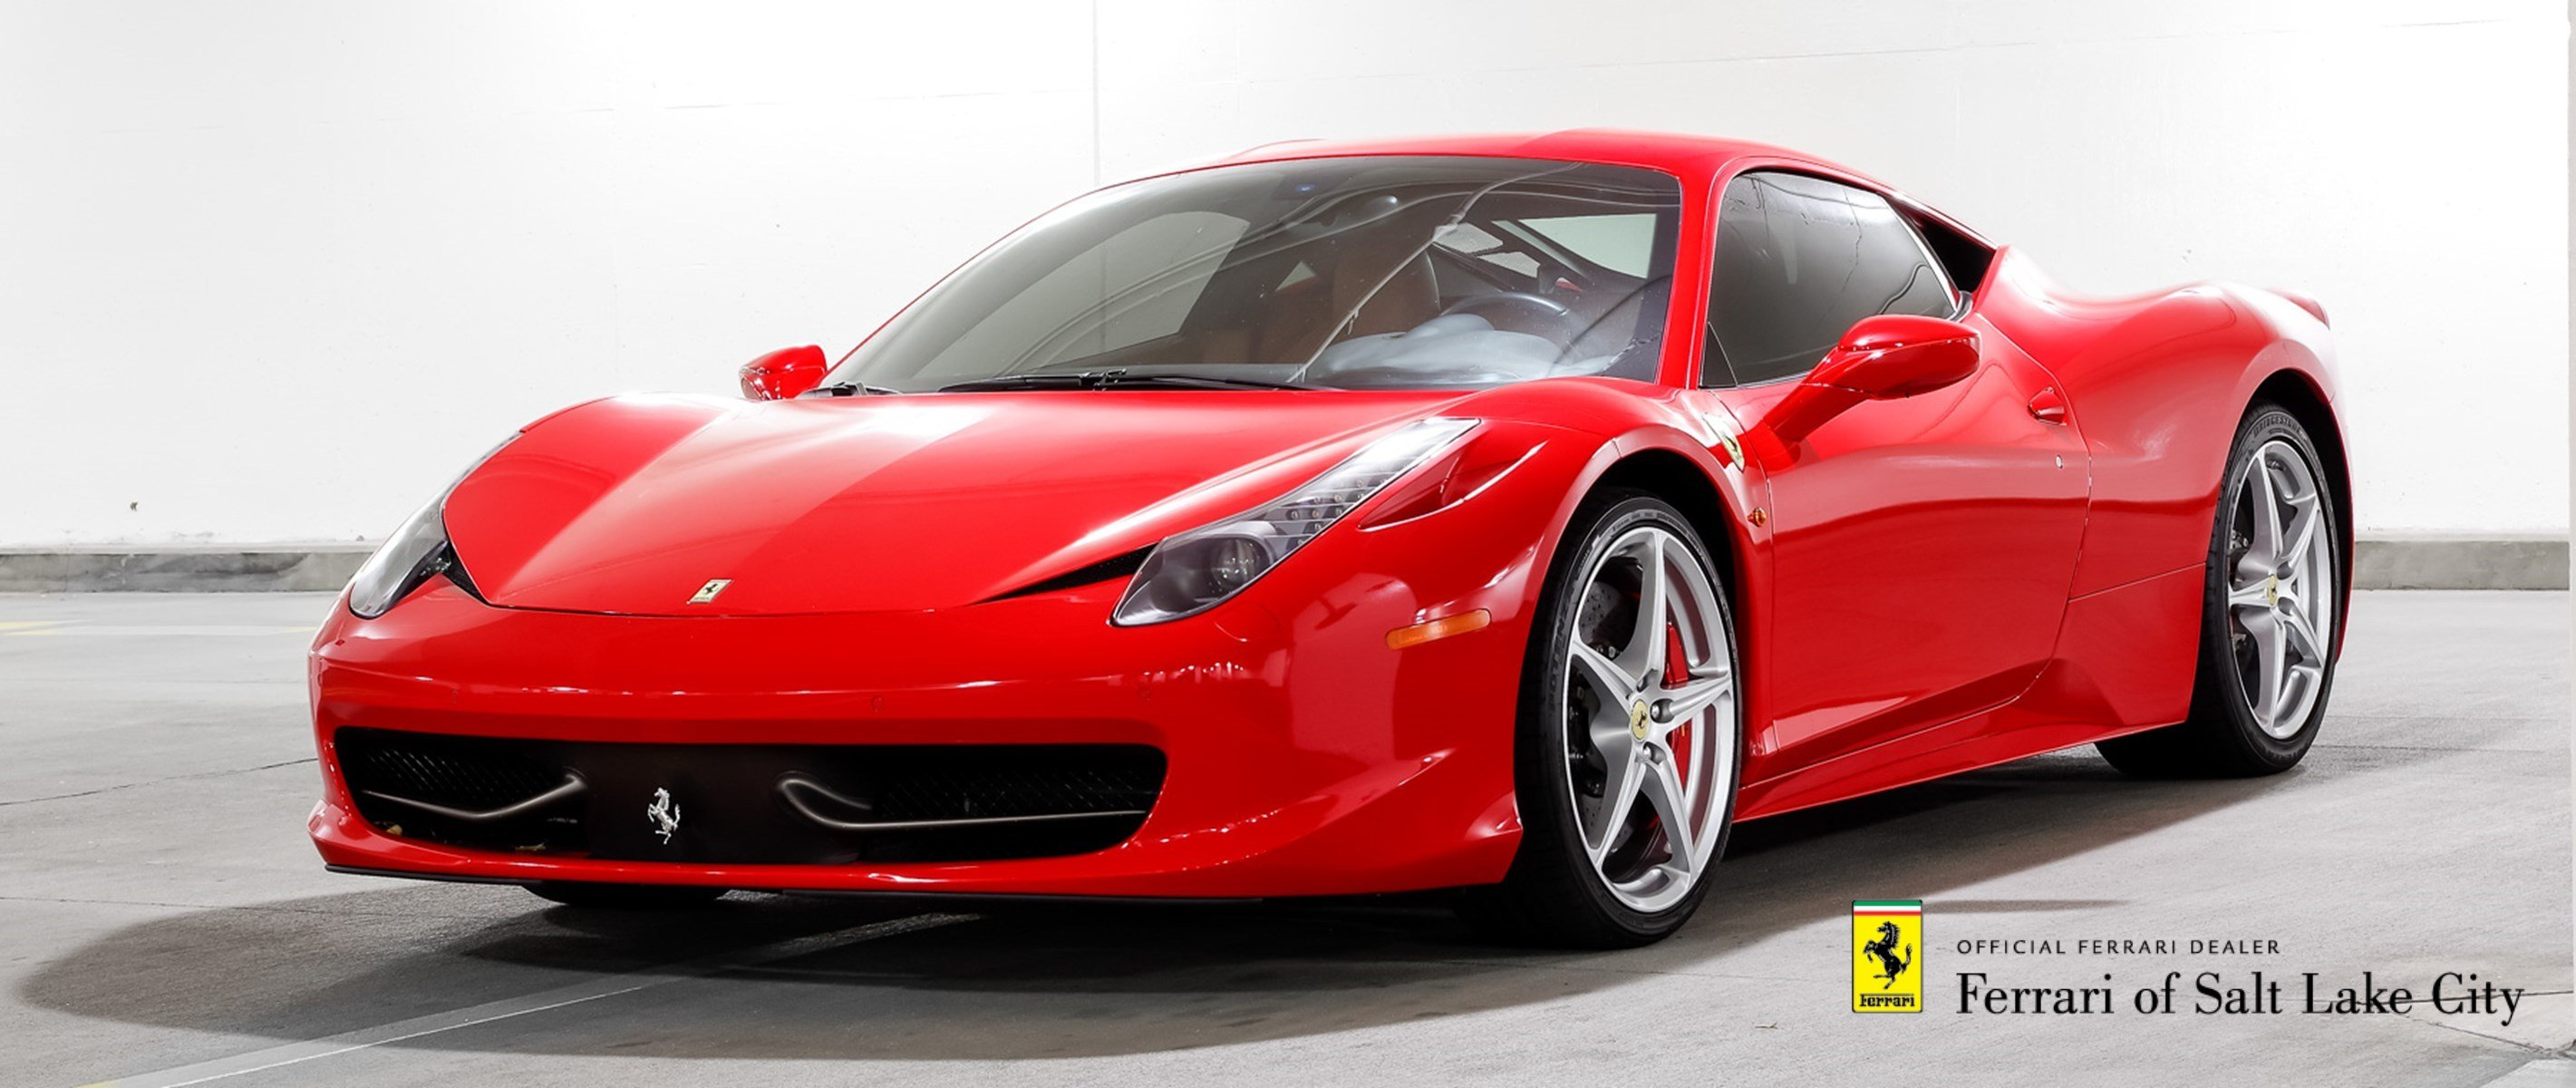 Monthly payment for ferrari 458 italia